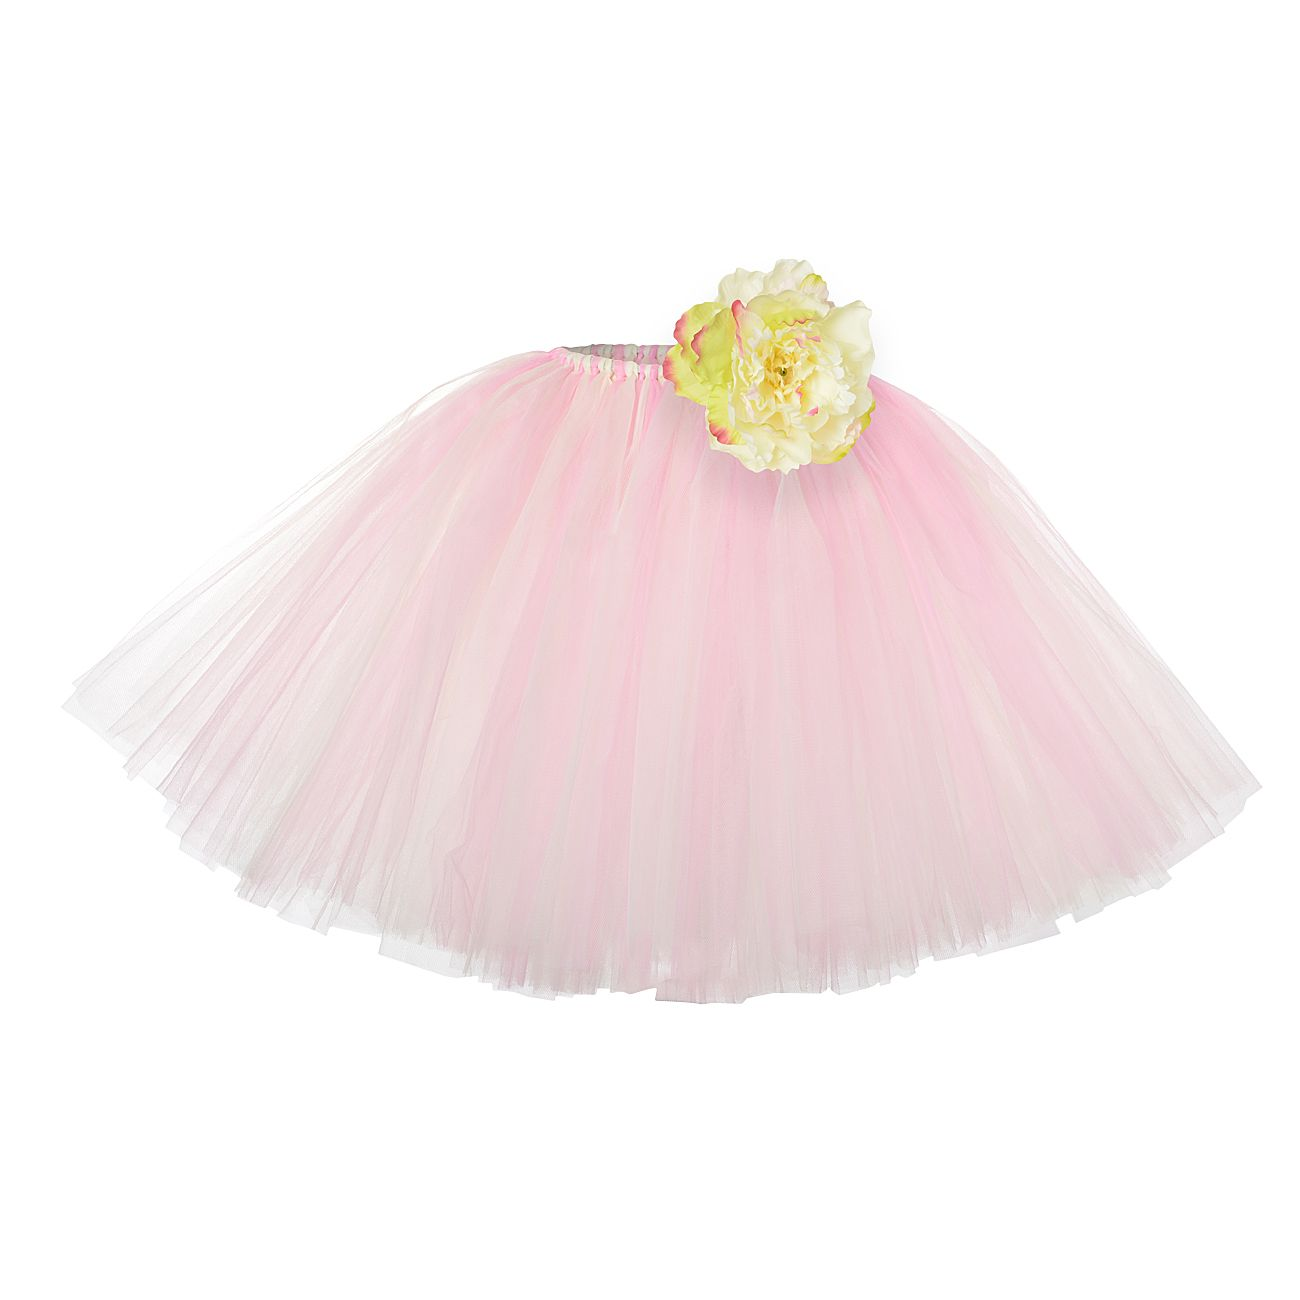 Flyingtutu Baby Girls Partially Lined Handmade Tutu Skirts